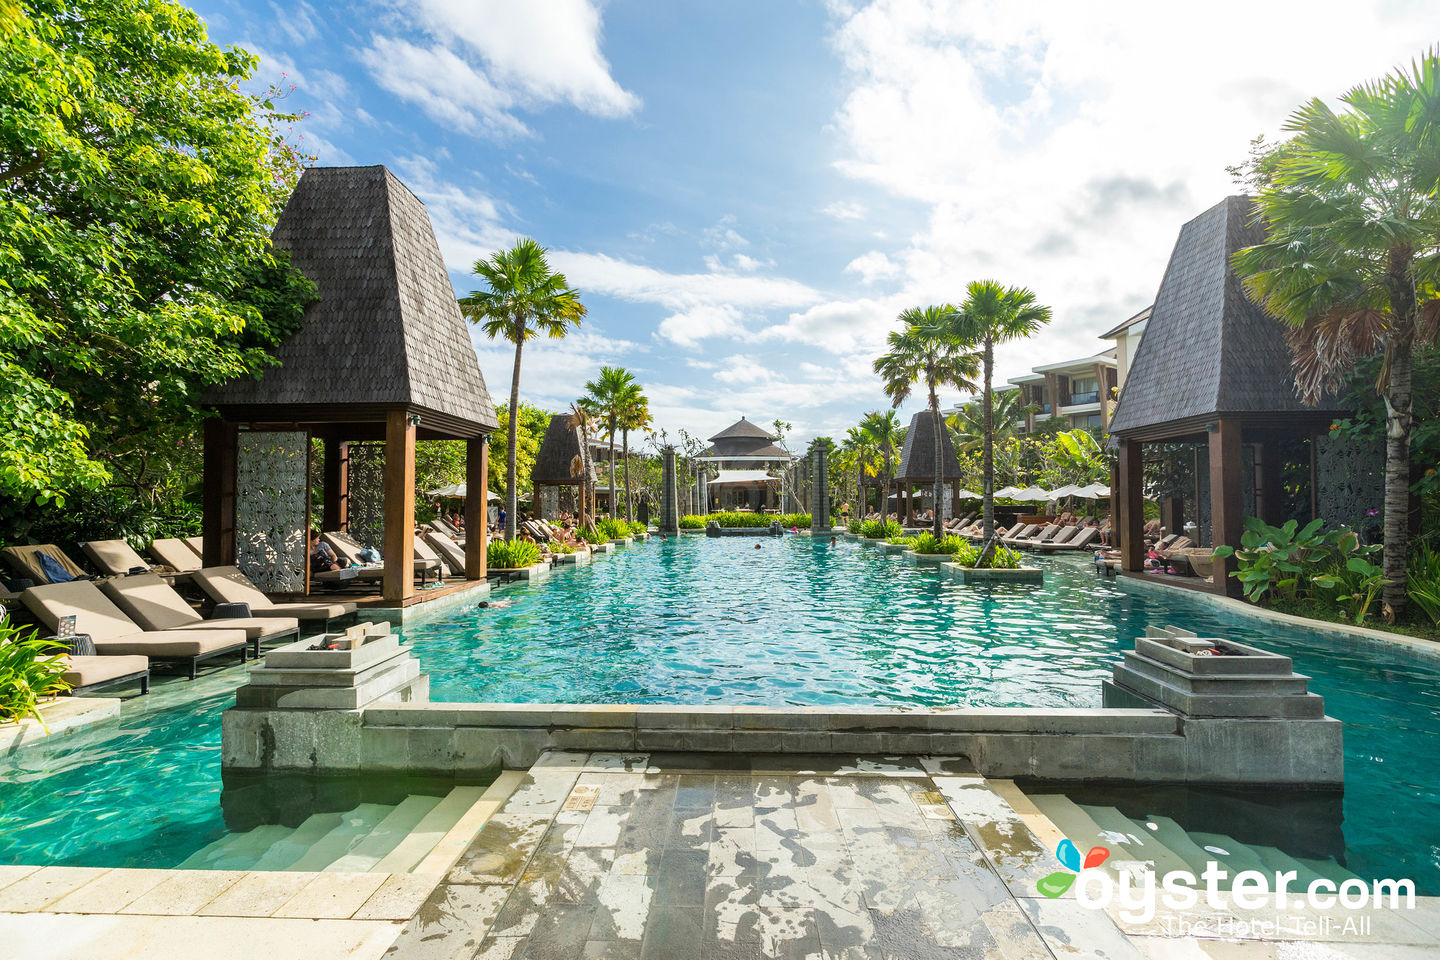 Sofitel Bali Nusa Dua Beach Resort Review What To Really Expect If You Stay